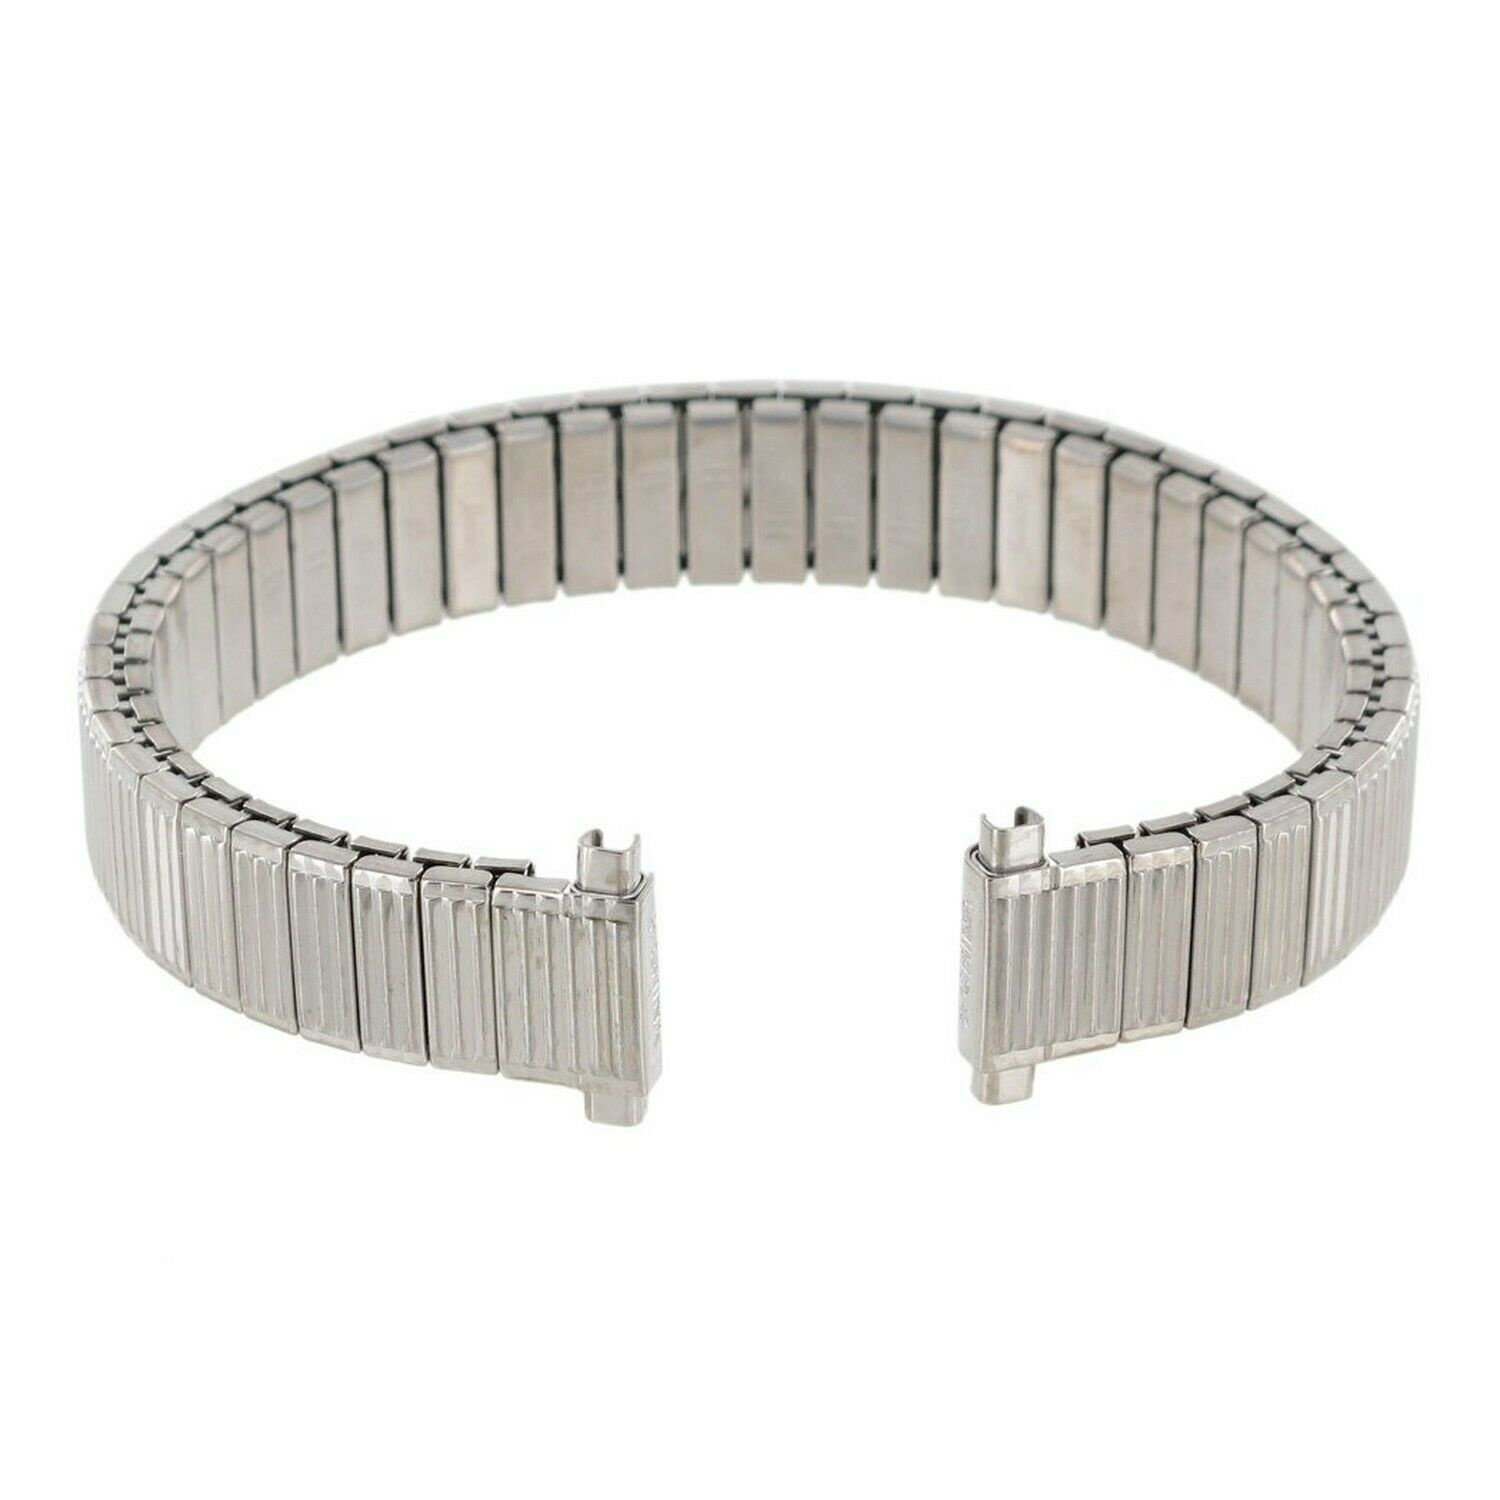 Primary image for Speidel Watch Band 10-13mm Ribbed Stainless Steel Expansion Ladies SHIPSFREE